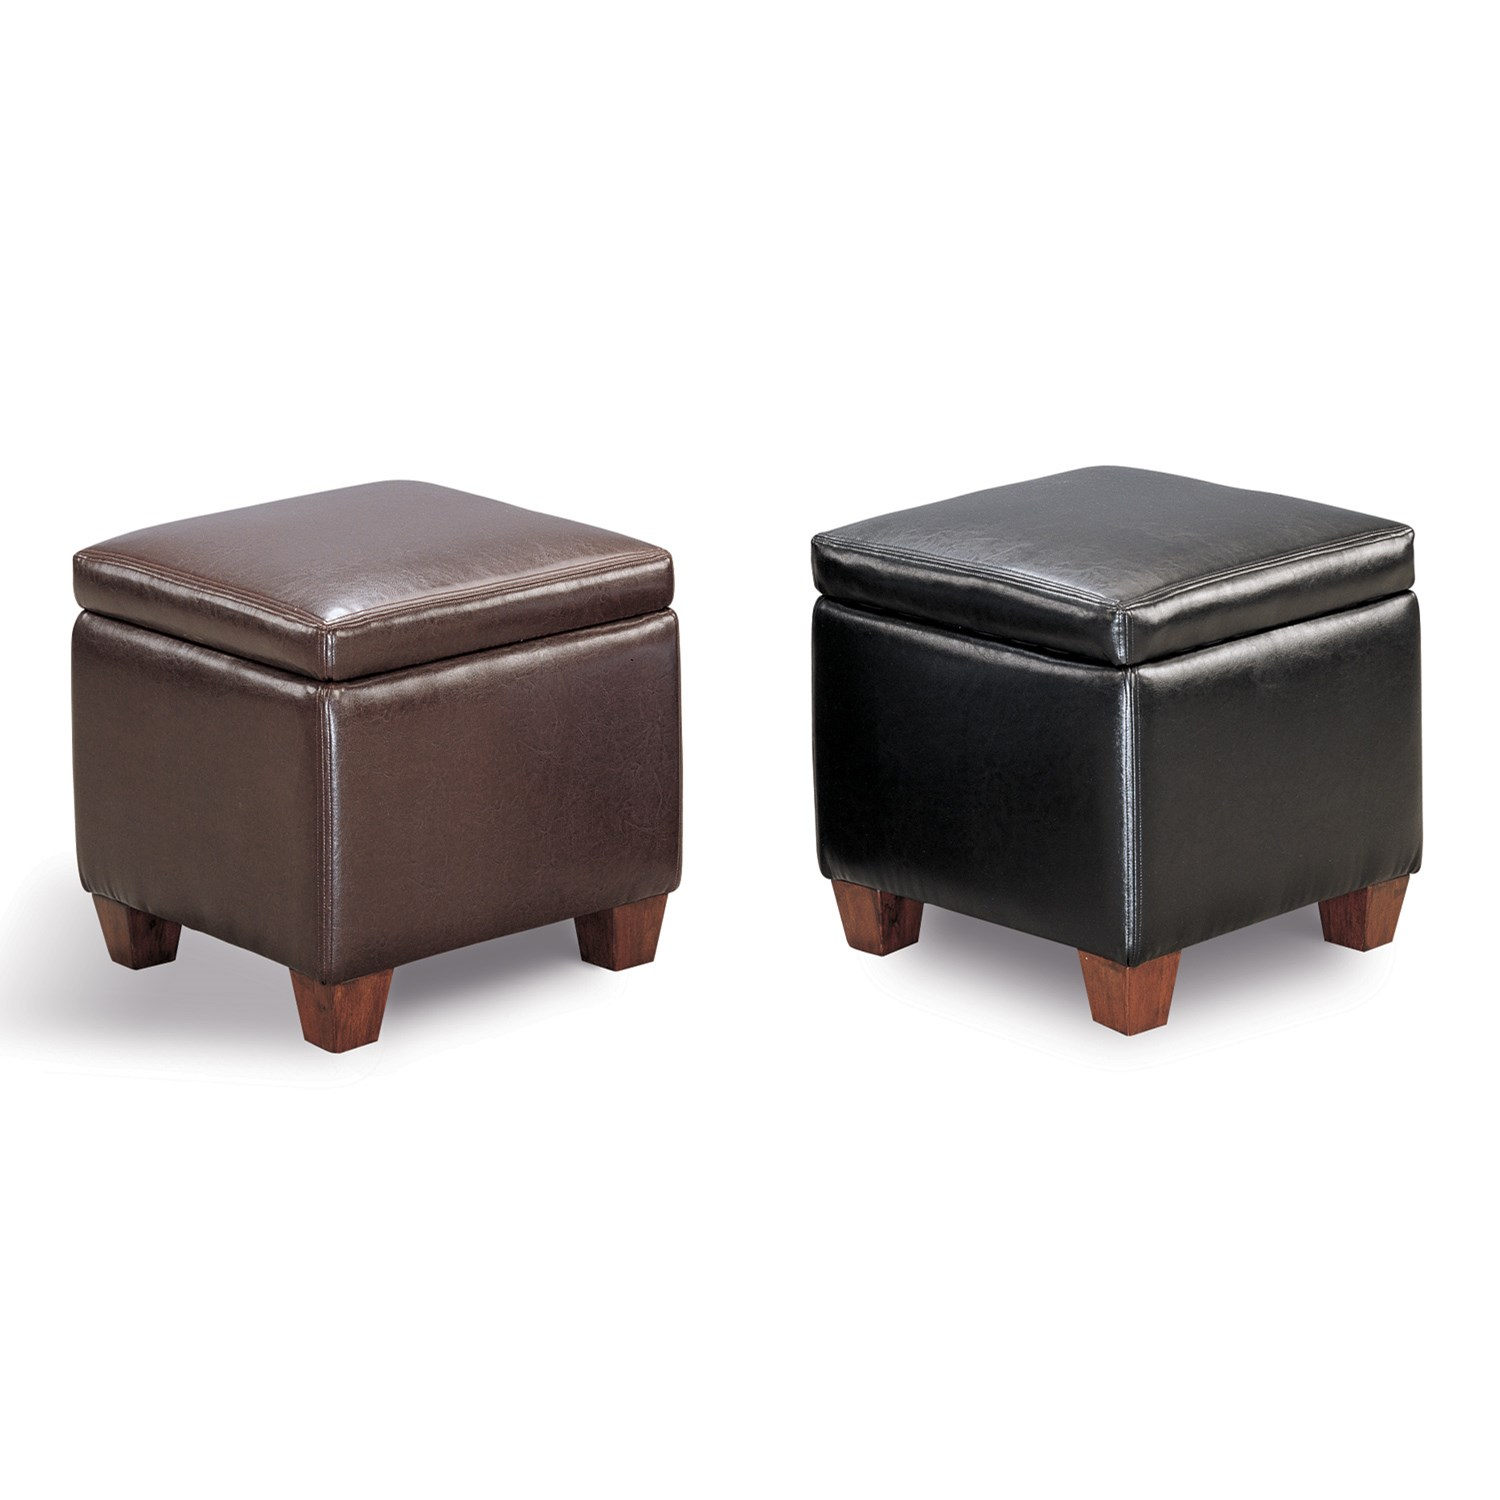 Storage Ottomans For Cube Ottoman Small Footstool With